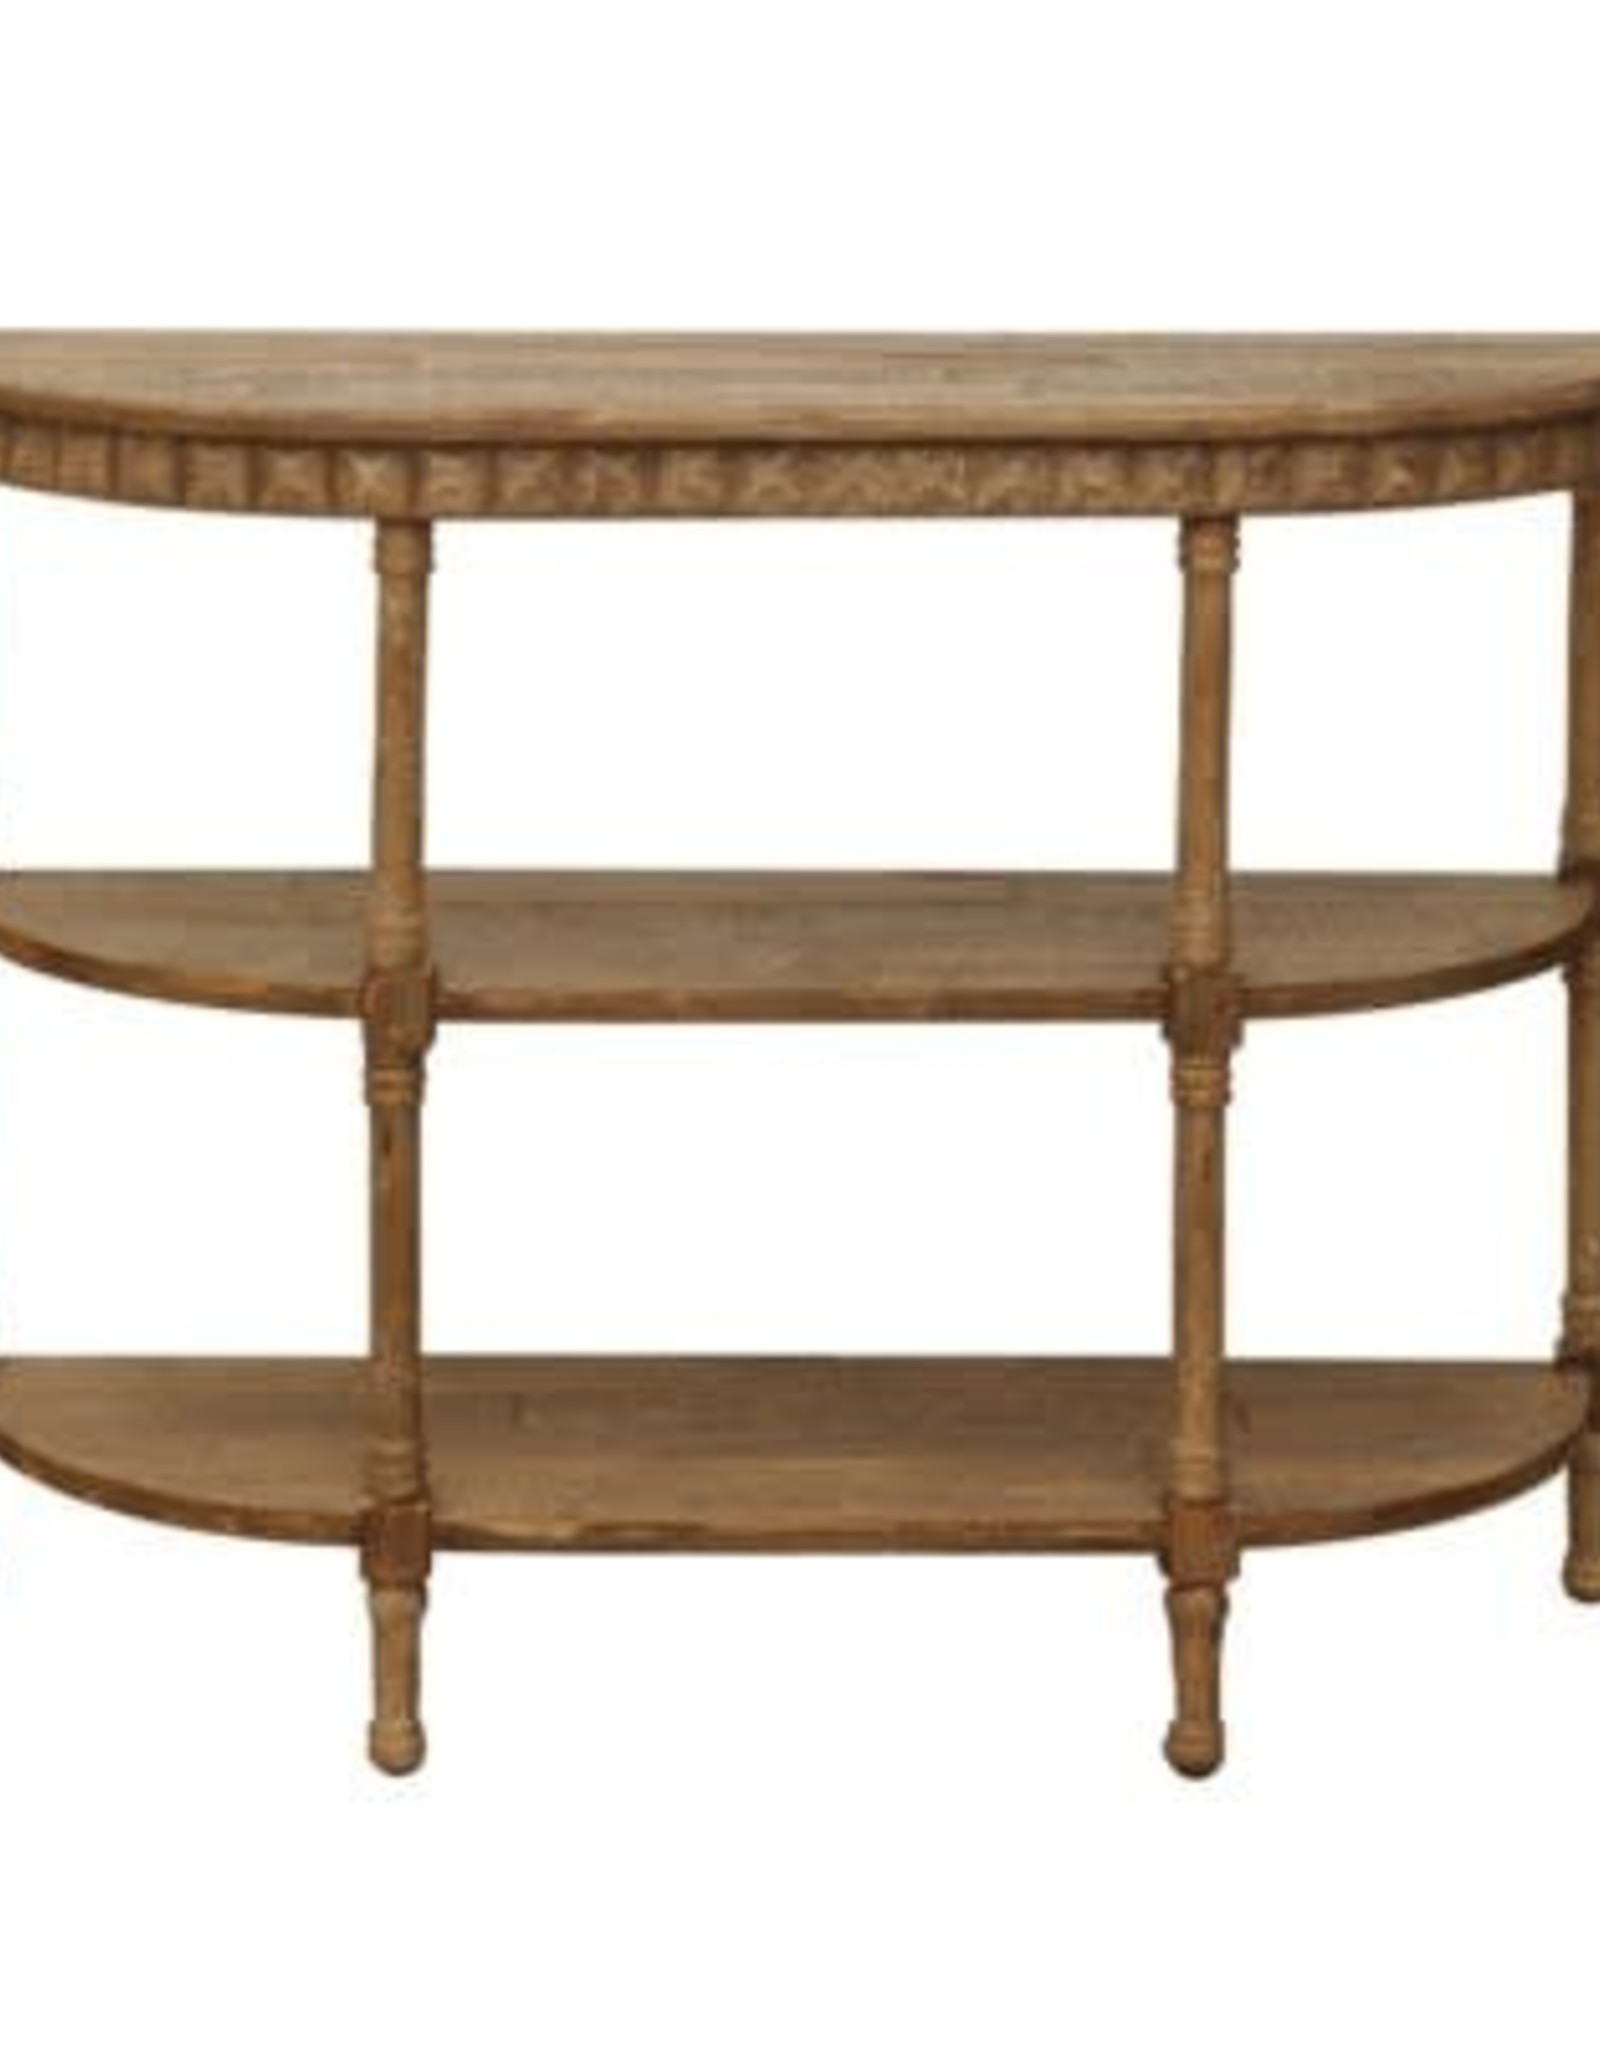 Crestview Cheyenne Semi-Round Sofa Console Table (Foyer, Hallway)